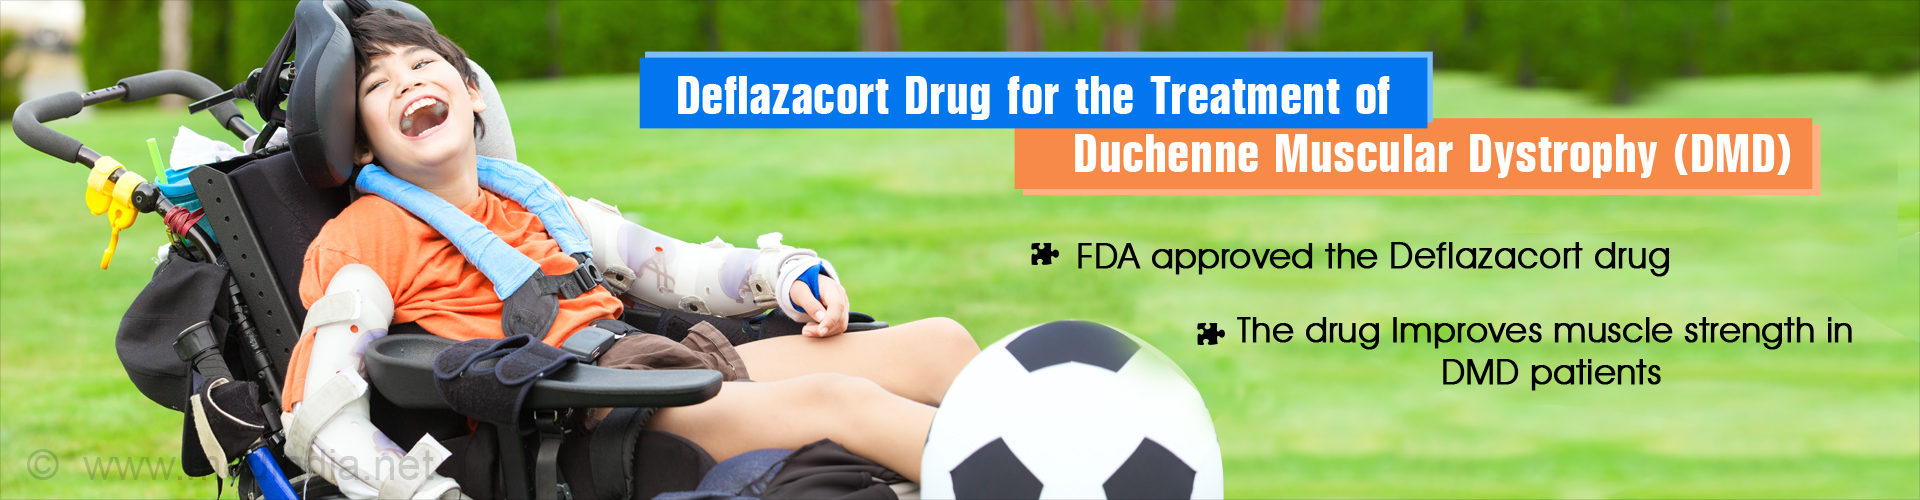 FDA Approves Deflazacort Drug to Treat Duchenne Muscular Dystrophy